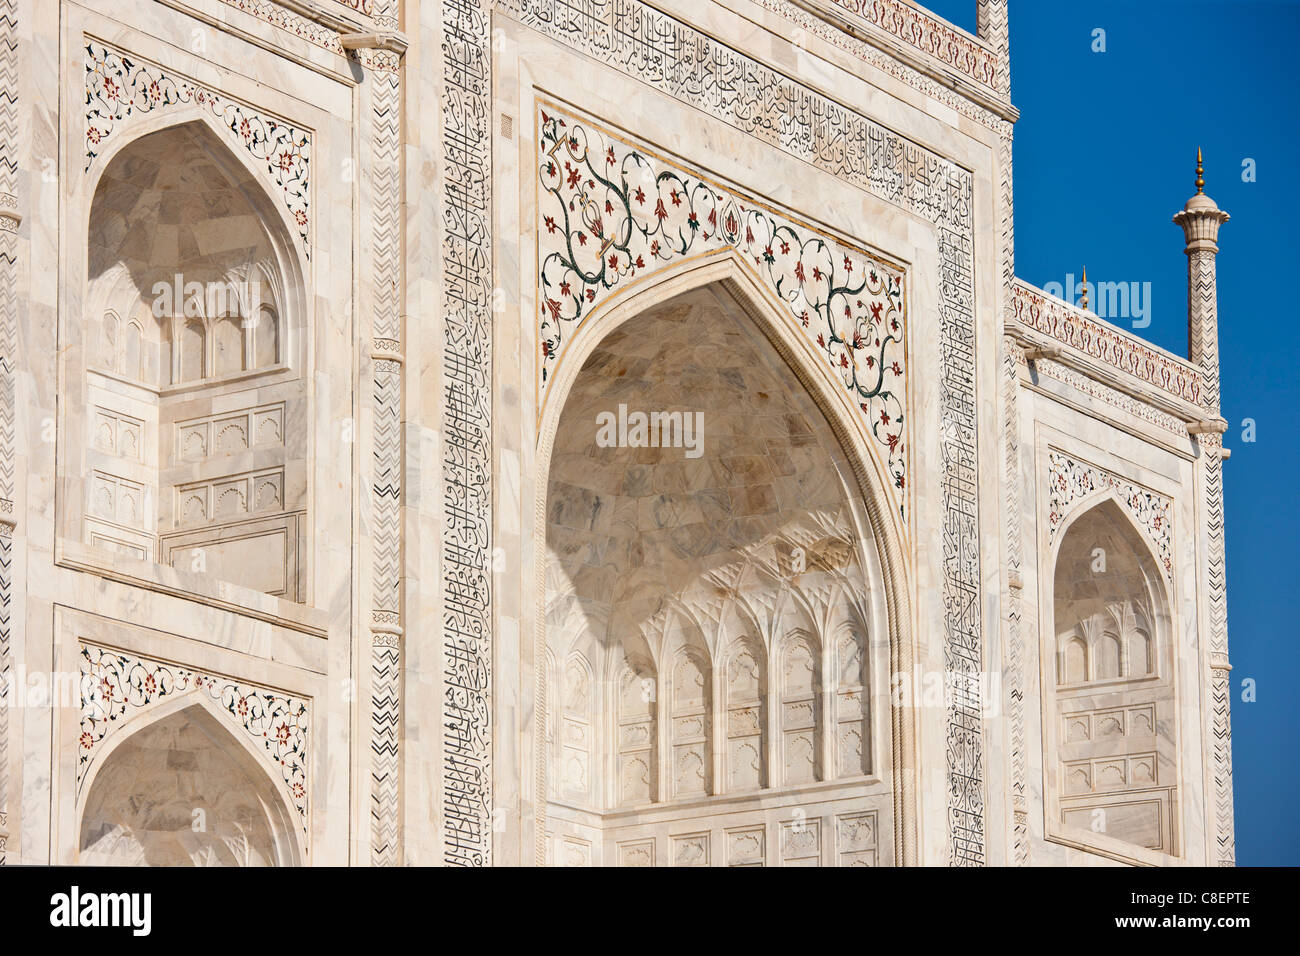 Iwans of The Taj Mahal mausoleum, southern view detail diamond facets with bas relief marble, Uttar Pradesh, India - Stock Image